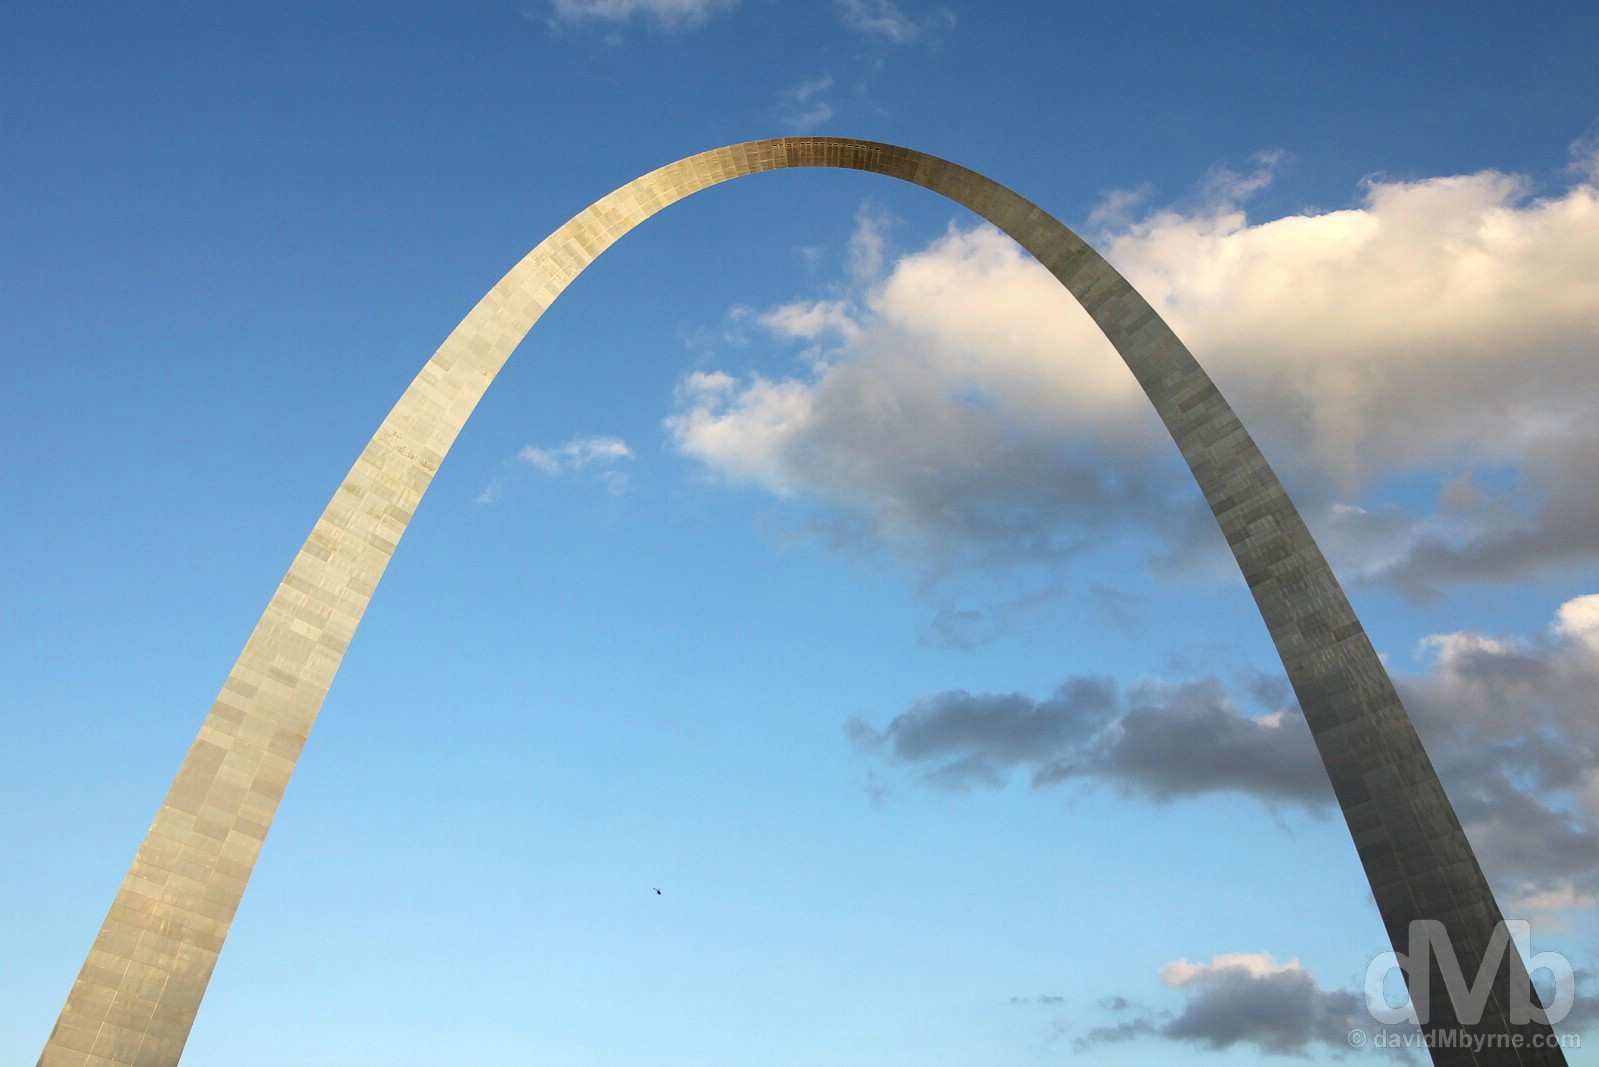 The Arch, St. Louis, Missouri, USA. September 17, 2016.